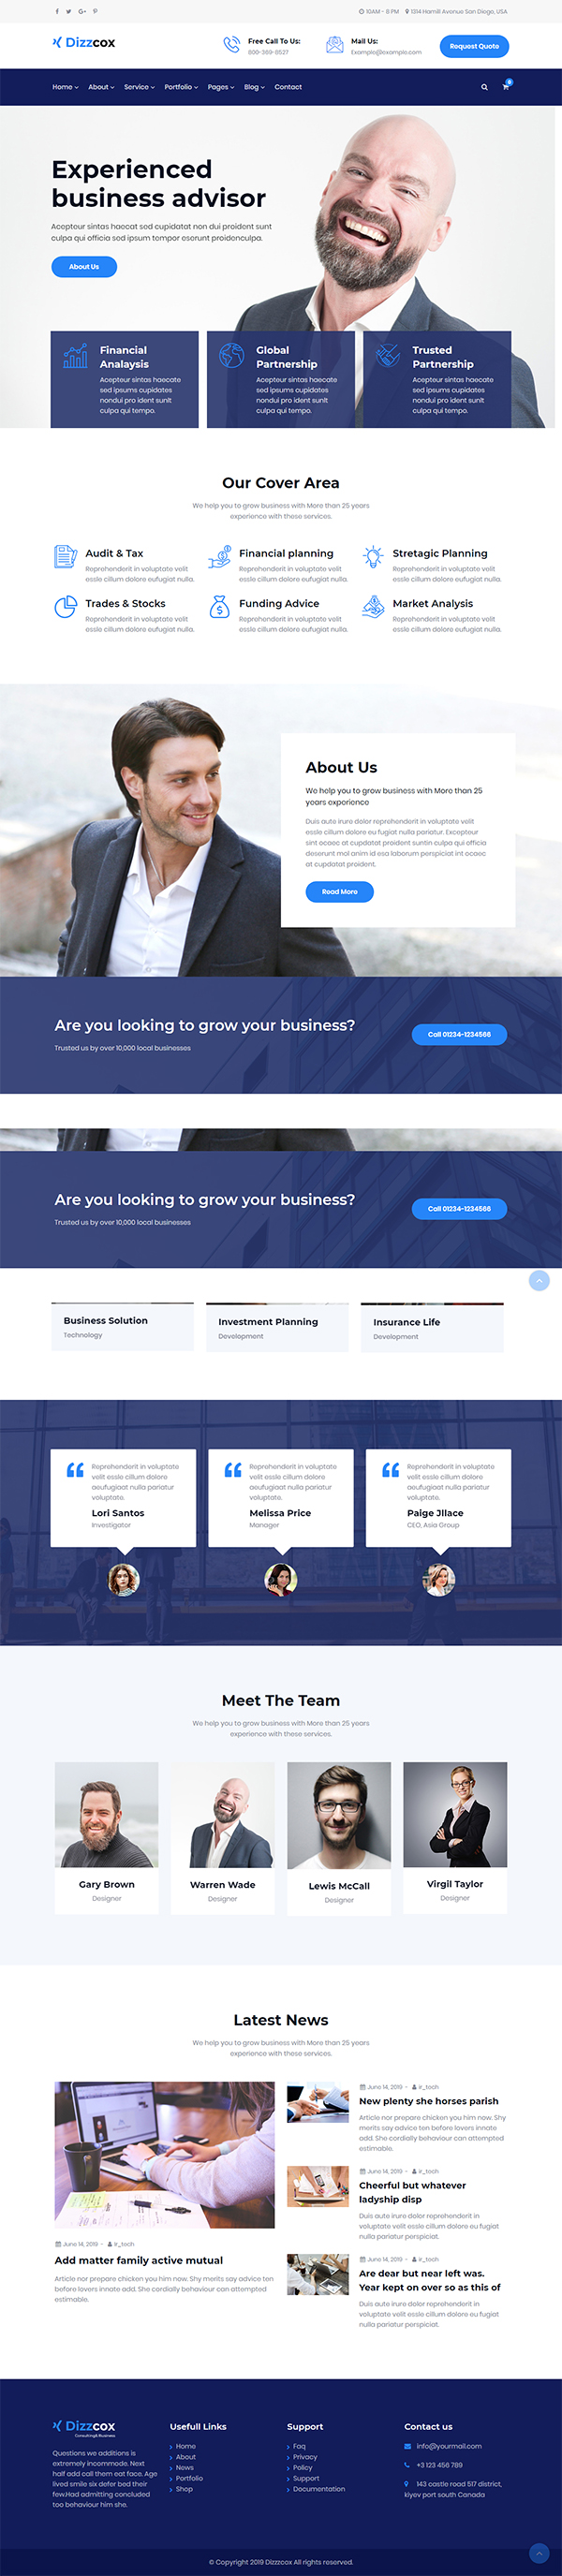 Dizzcox - Consulting Business WordPress Theme